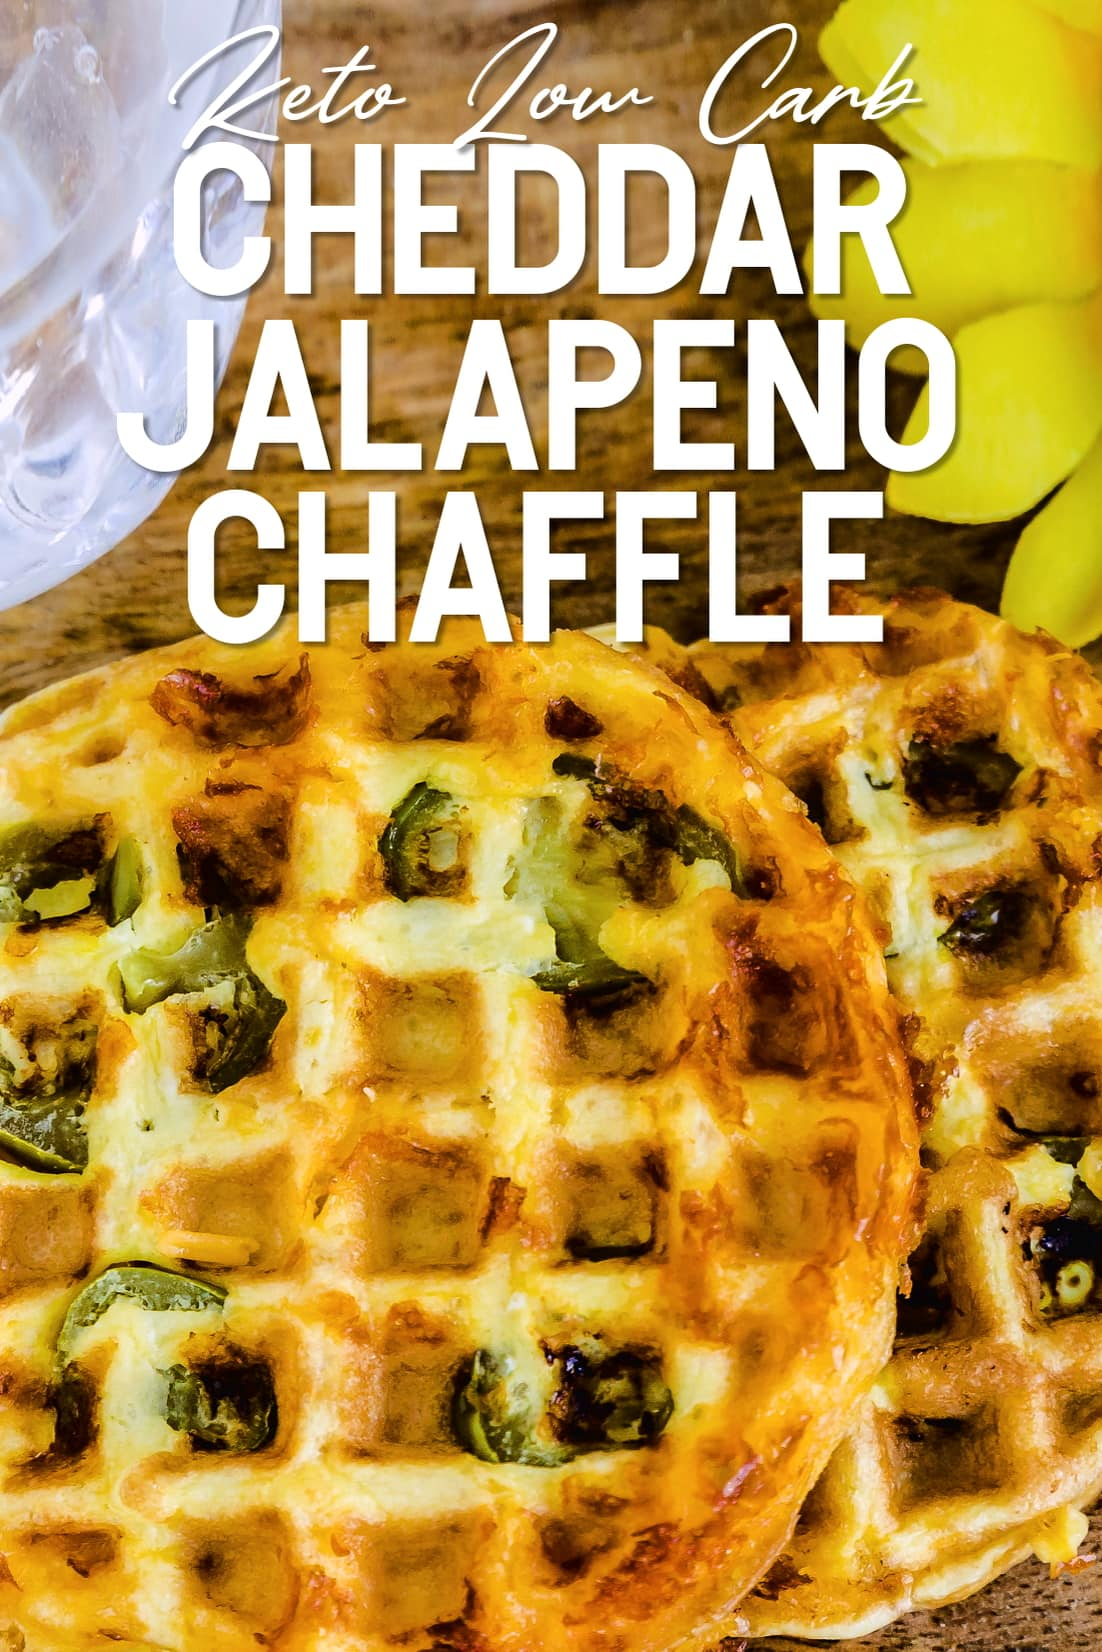 Cheddar Jalapeño Chaffle served on a wooden plank